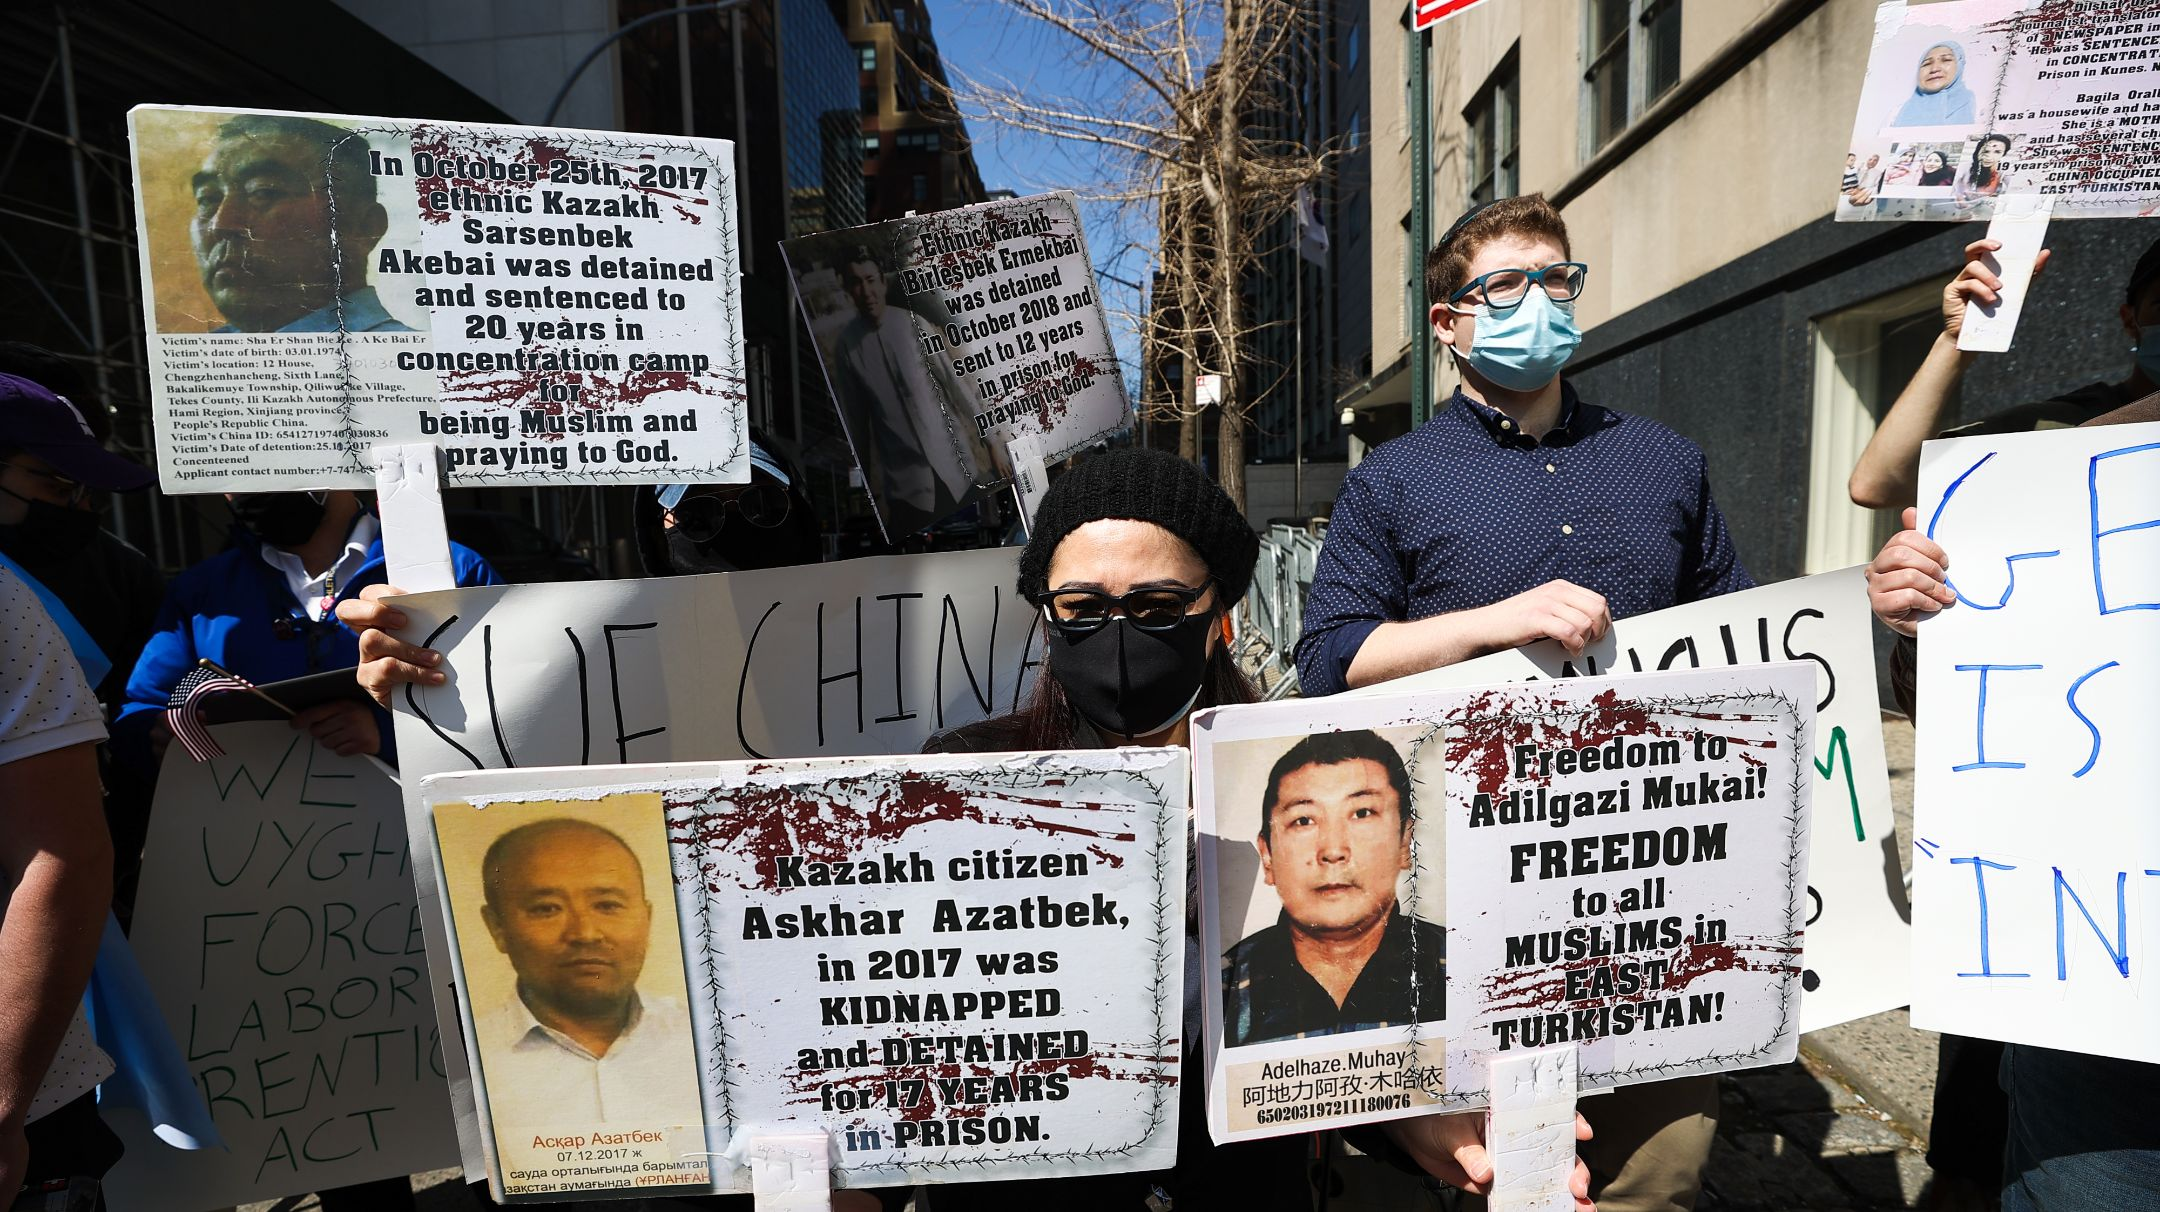 Israel declines to sign UN statement on China's treatment of Uighurs